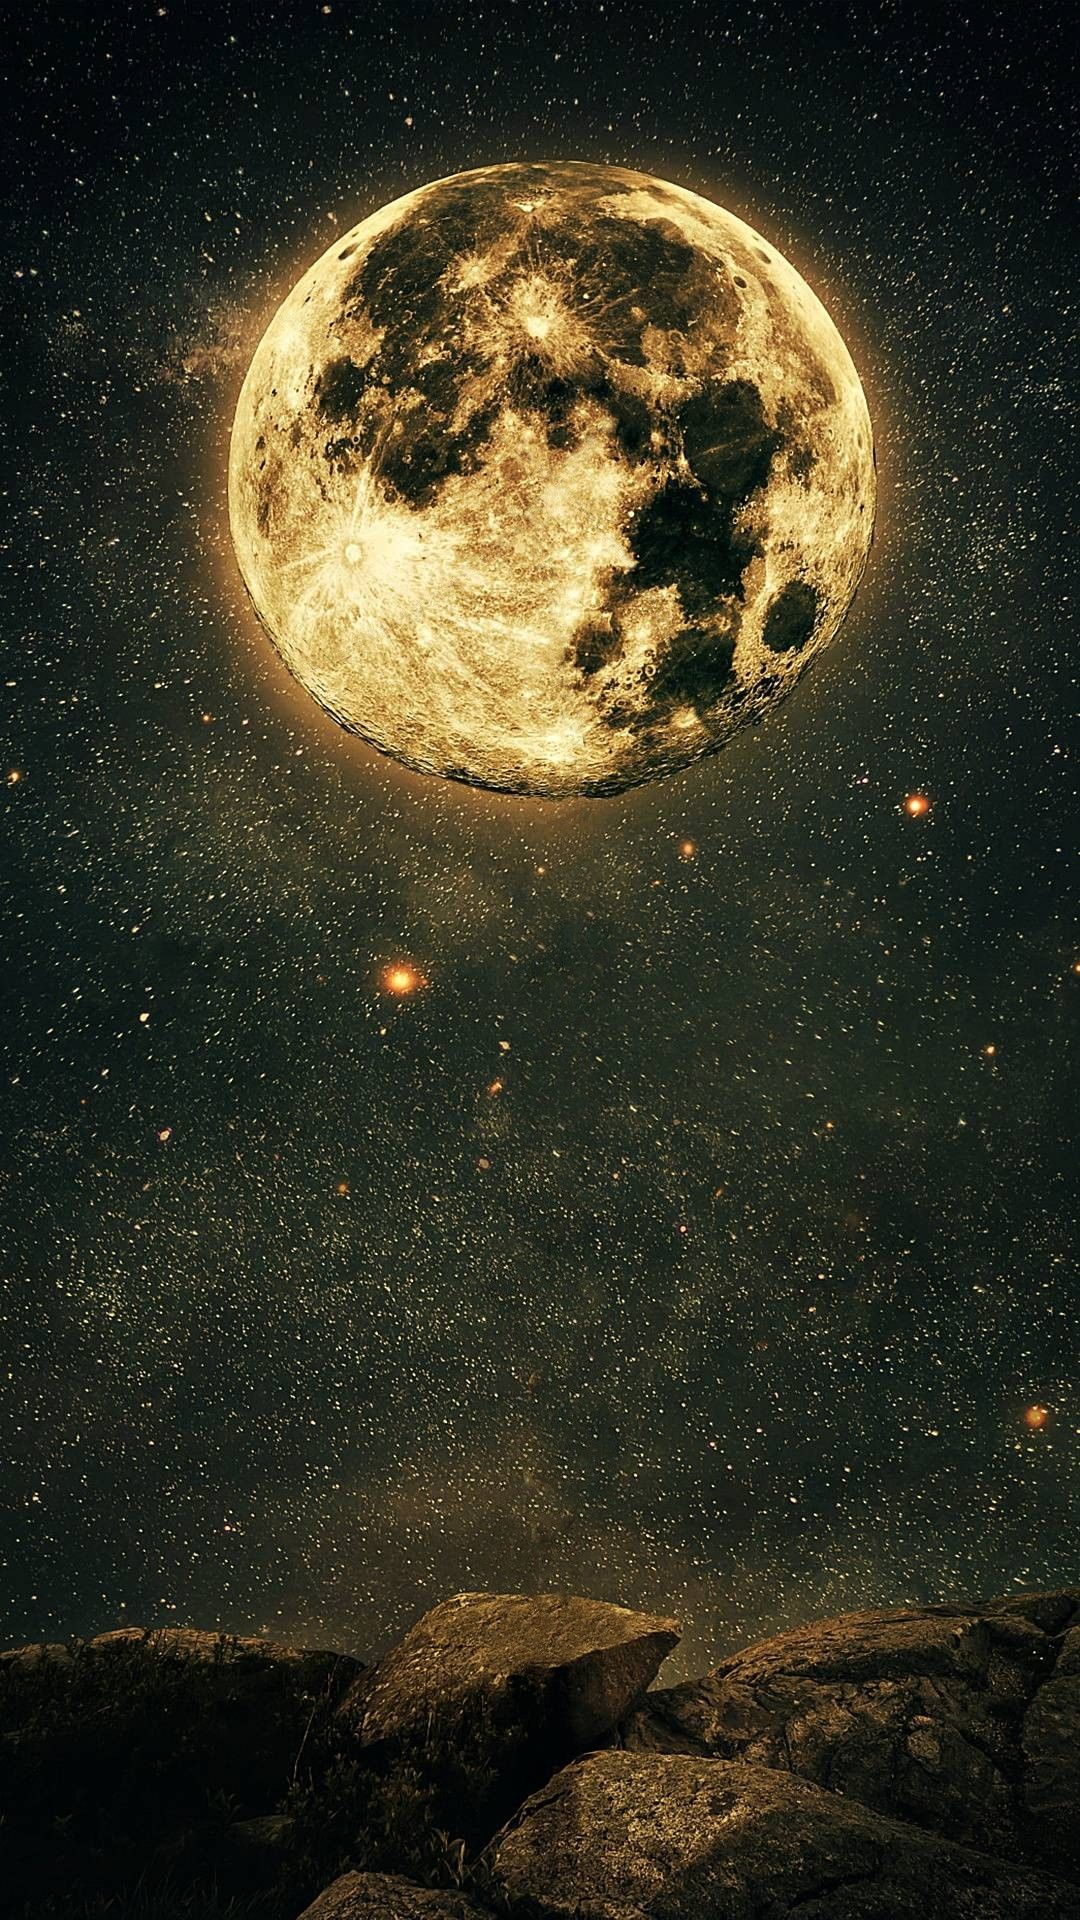 Full Moon and Starry Night Wallpaper Wallpapers in 2019 Starry 1080x1920